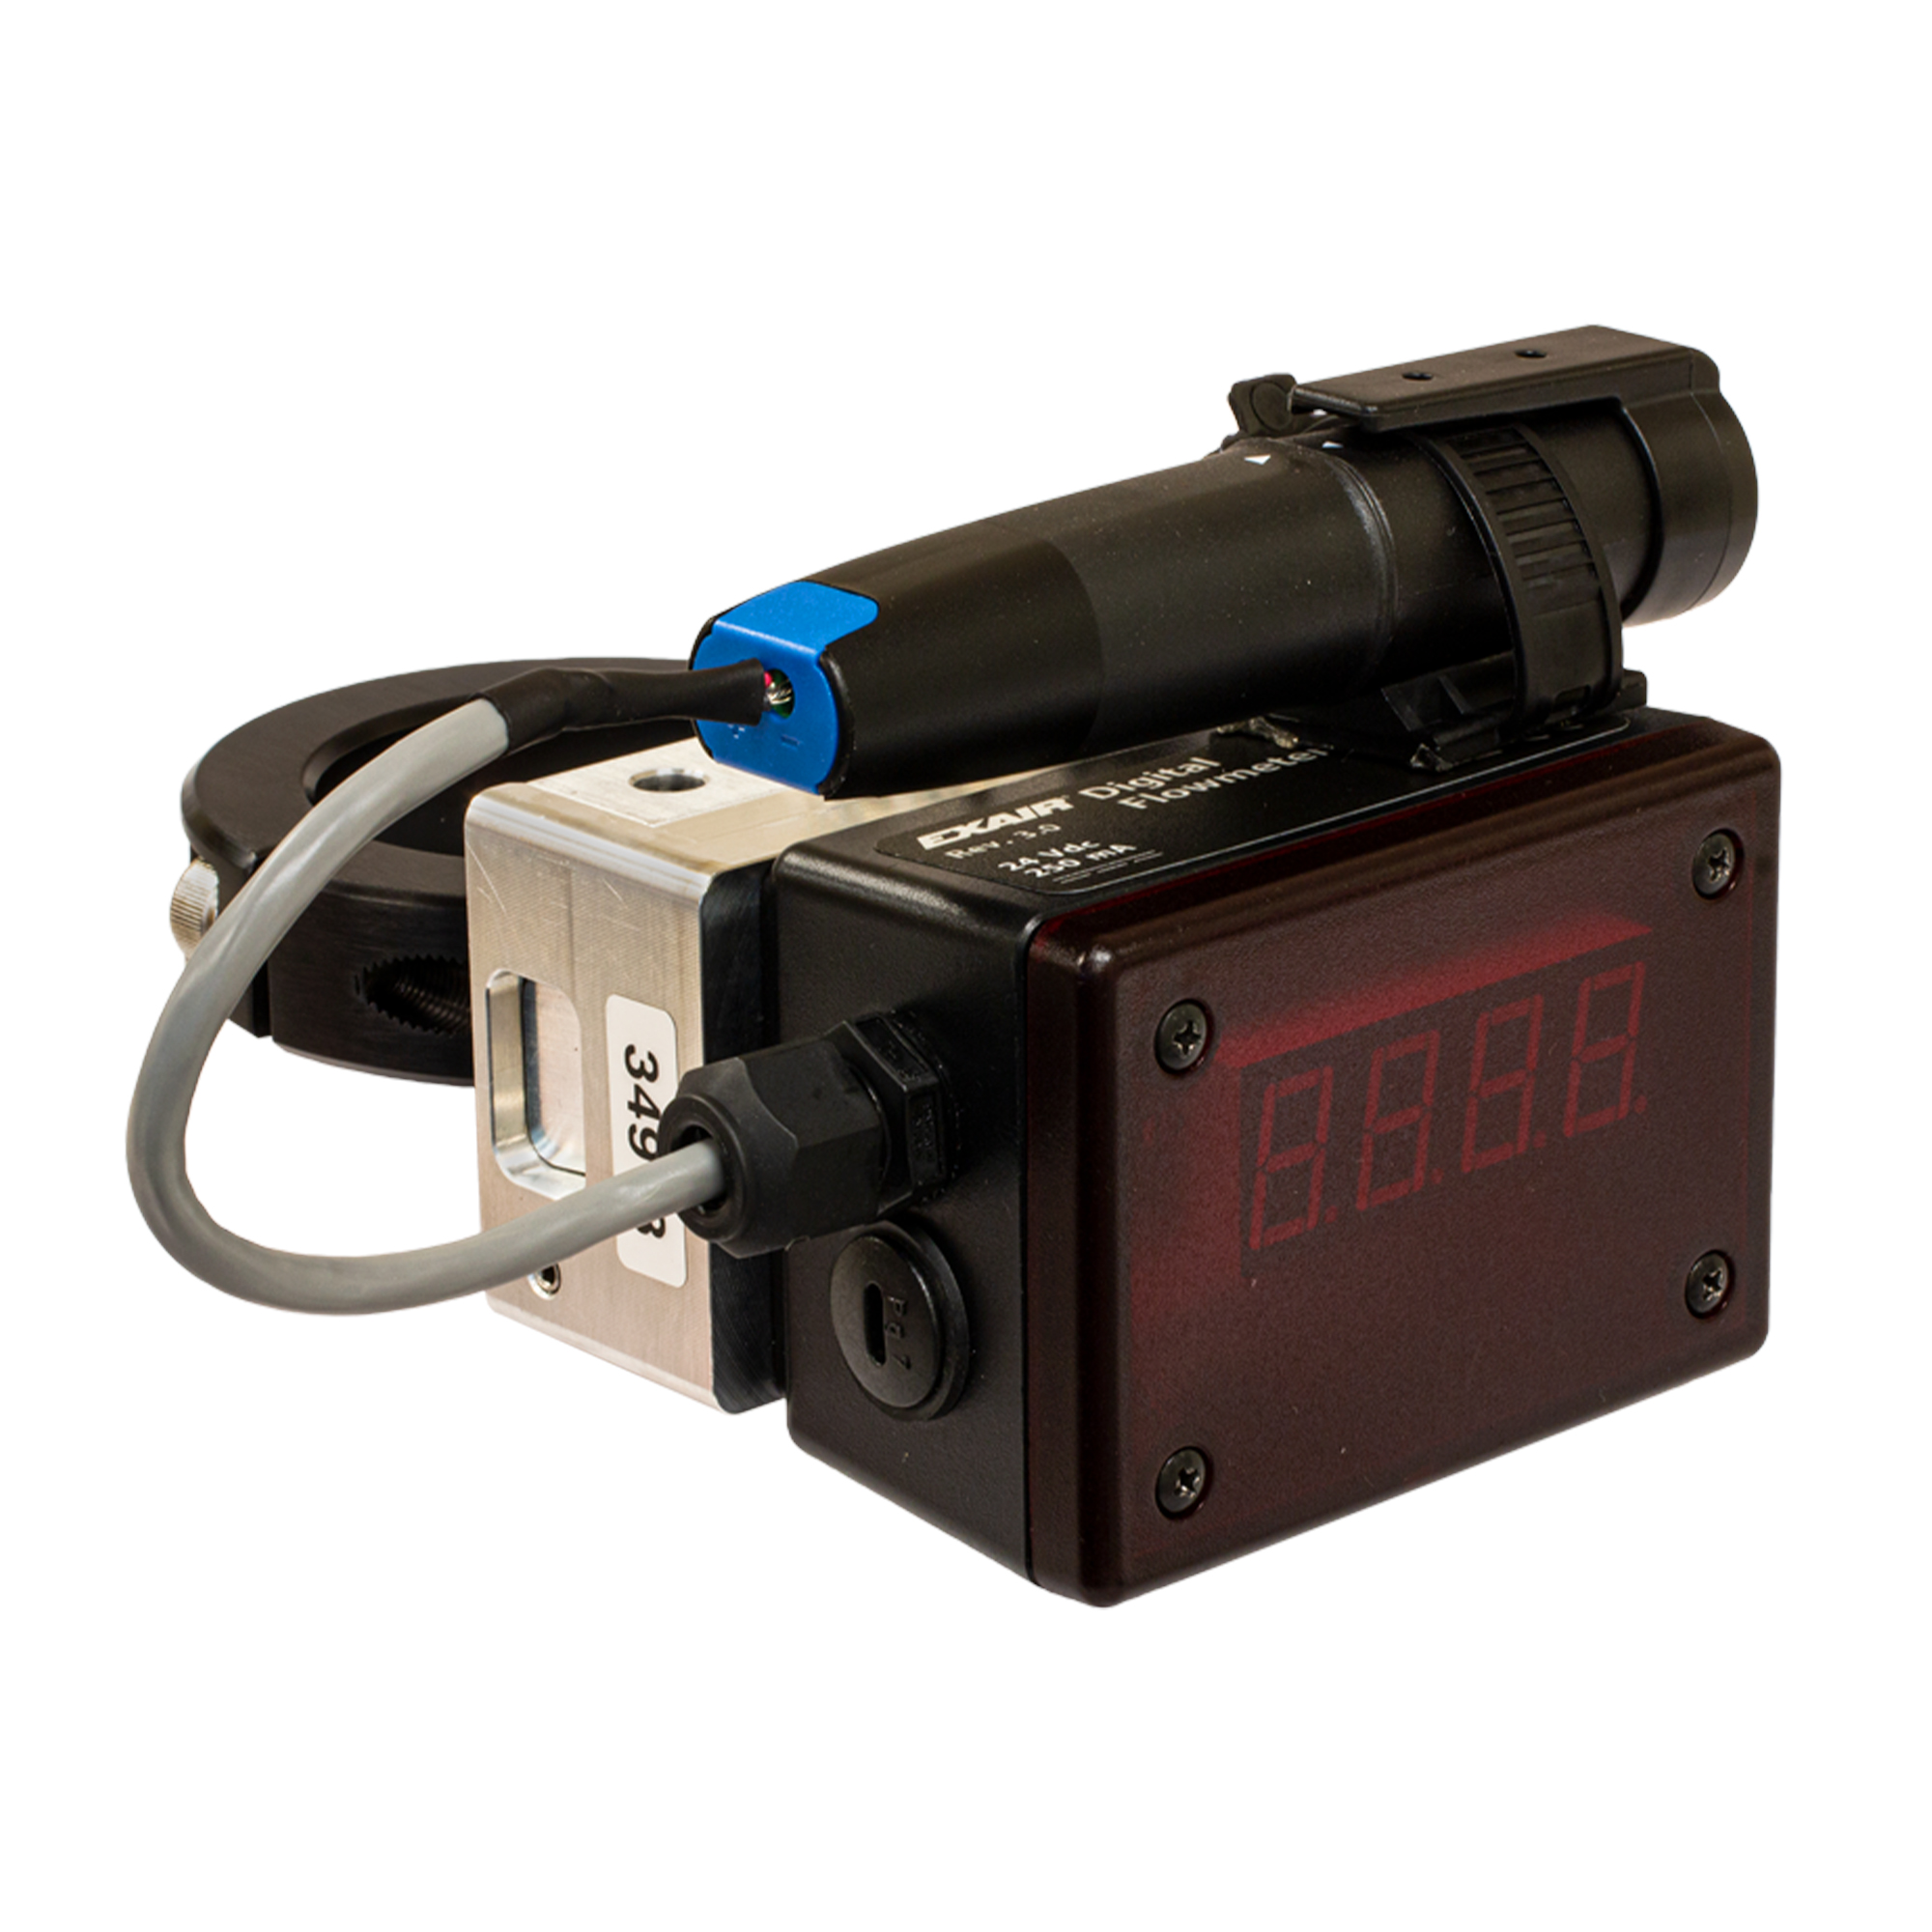 The Hot Tap Digital Flowmeter with Data logger gathers air use data from one specific manufacturing process in order to better understand air use trends.